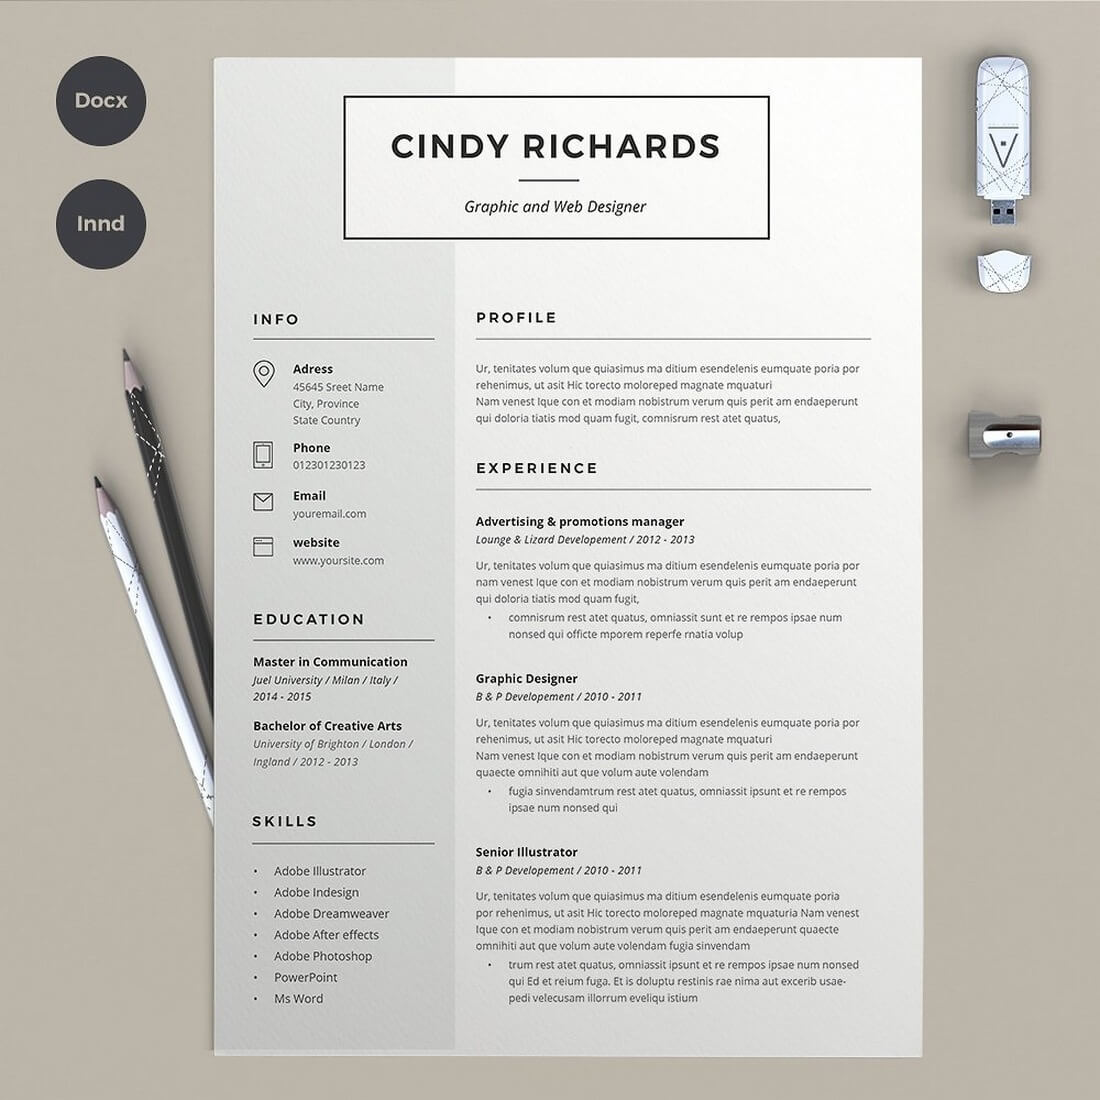 Nice 1 Page Resume Format Free Download Thick 10 Envelope Template Solid 15 Year Old Resume Sample 18th Invitation Templates Young 1and1 Templates Dark2 Binder Spine Template The Best CV \u0026 Resume Templates: 50 Examples \u2013 Ok Huge